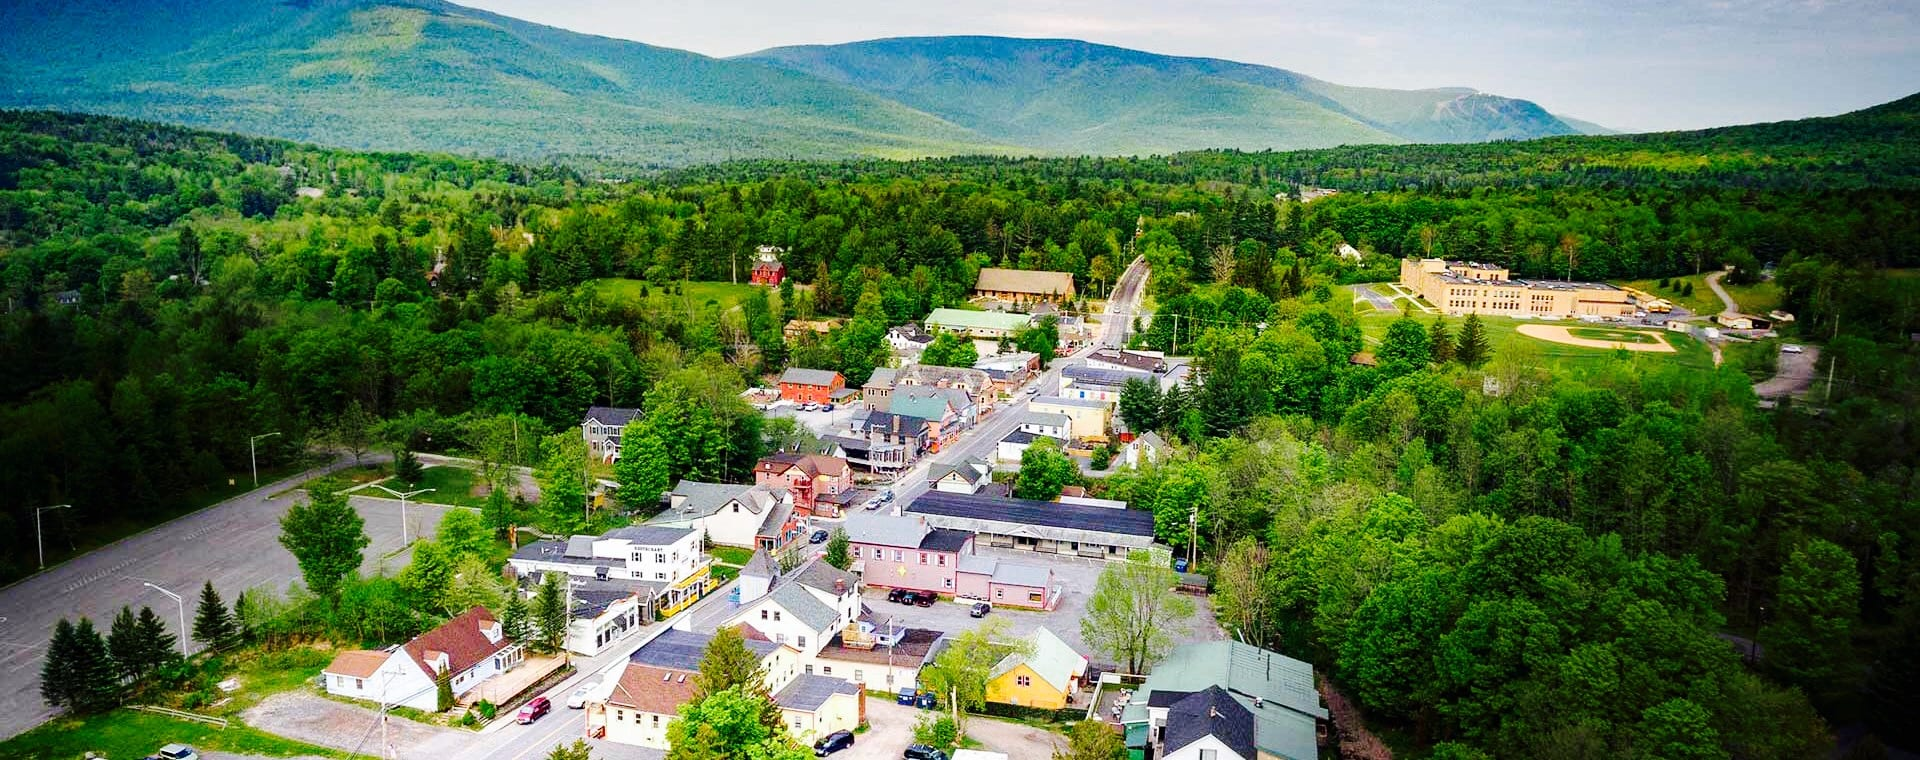 Town of Hunter Picture, NY